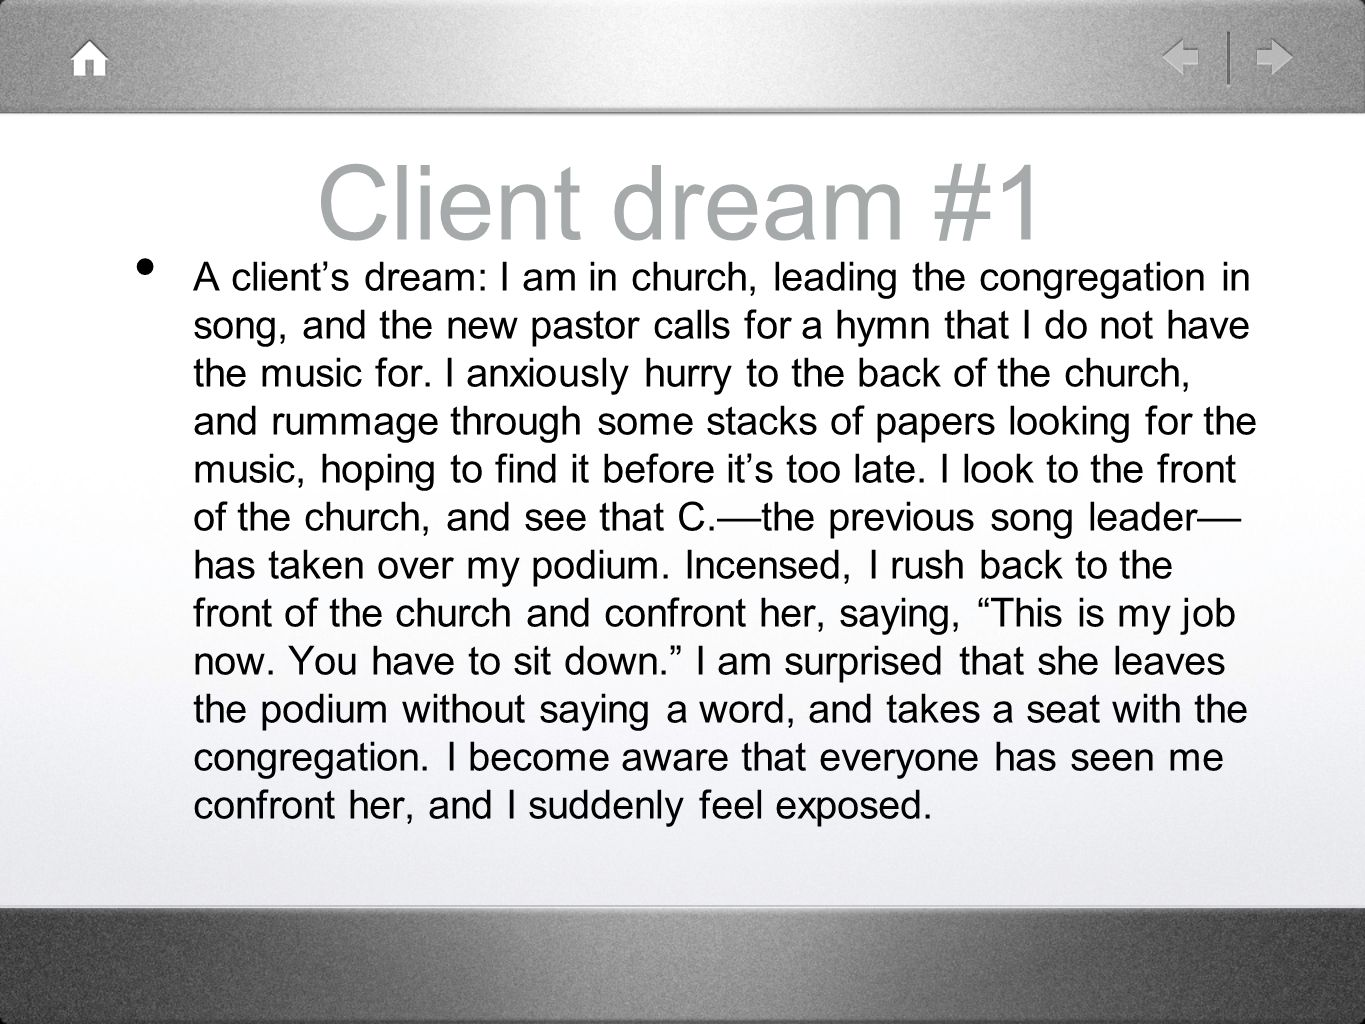 Client dream #1 A client's dream: I am in church, leading the congregation in song, and the new pastor calls for a hymn that I do not have the music for.